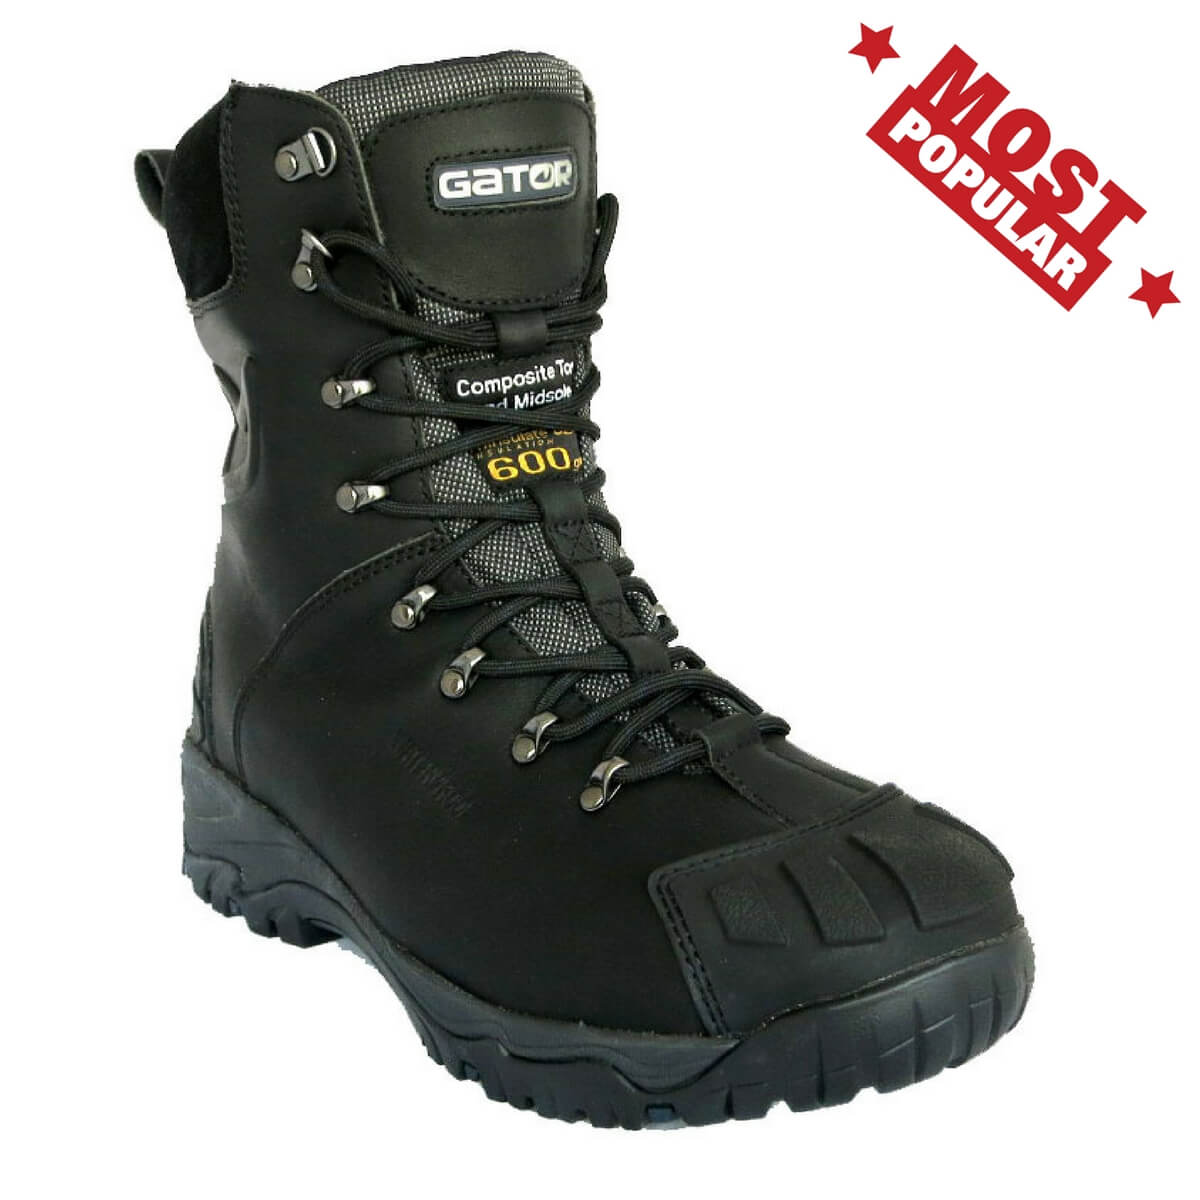 toe duluth men most store work s boots product justin shoes dbr comfortable steel comforter mens trading